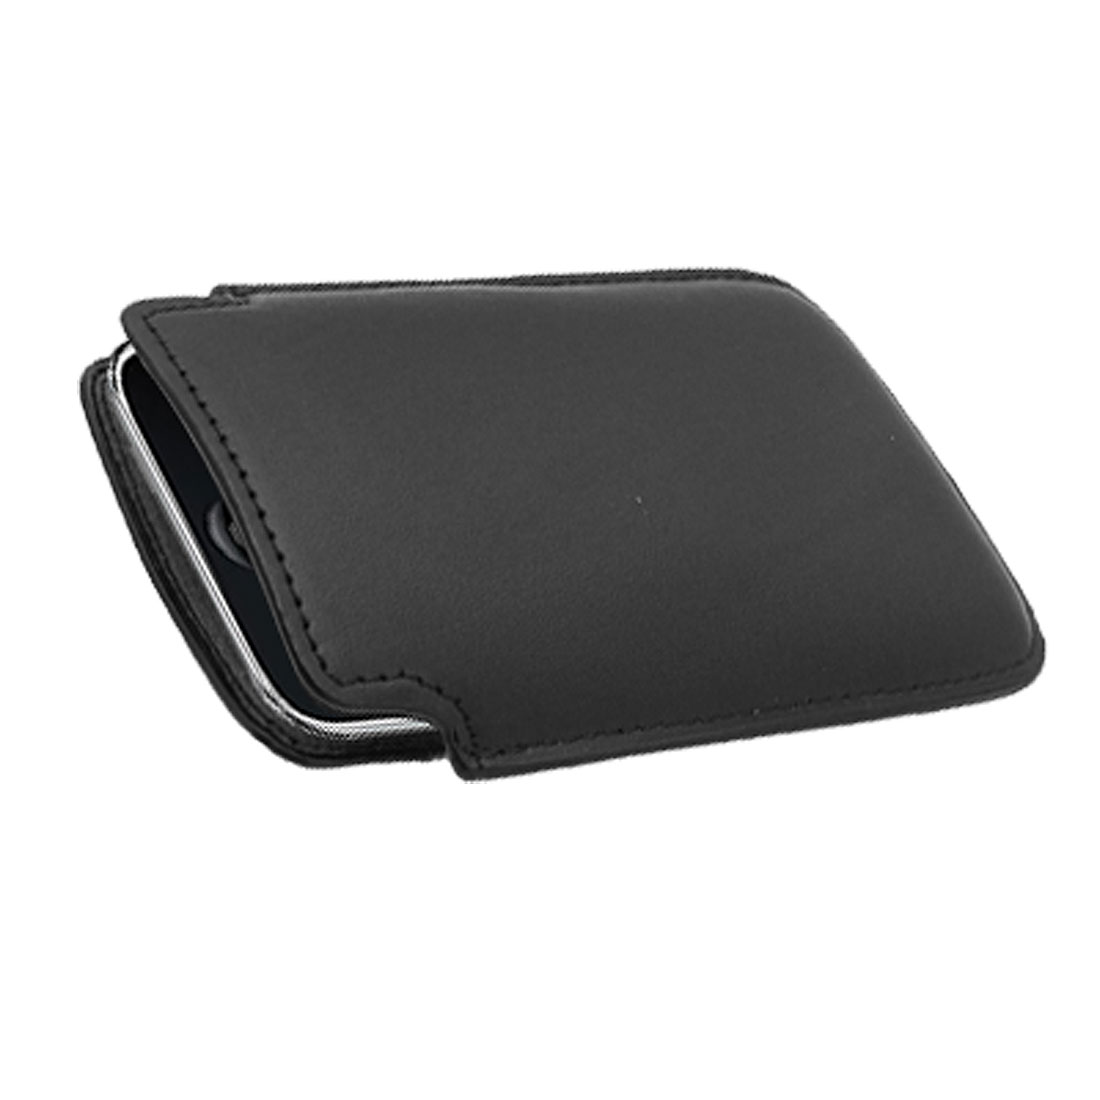 Elegant Leather Black Sleeve Case Pouch for Apple iPhone 3G / 3GS